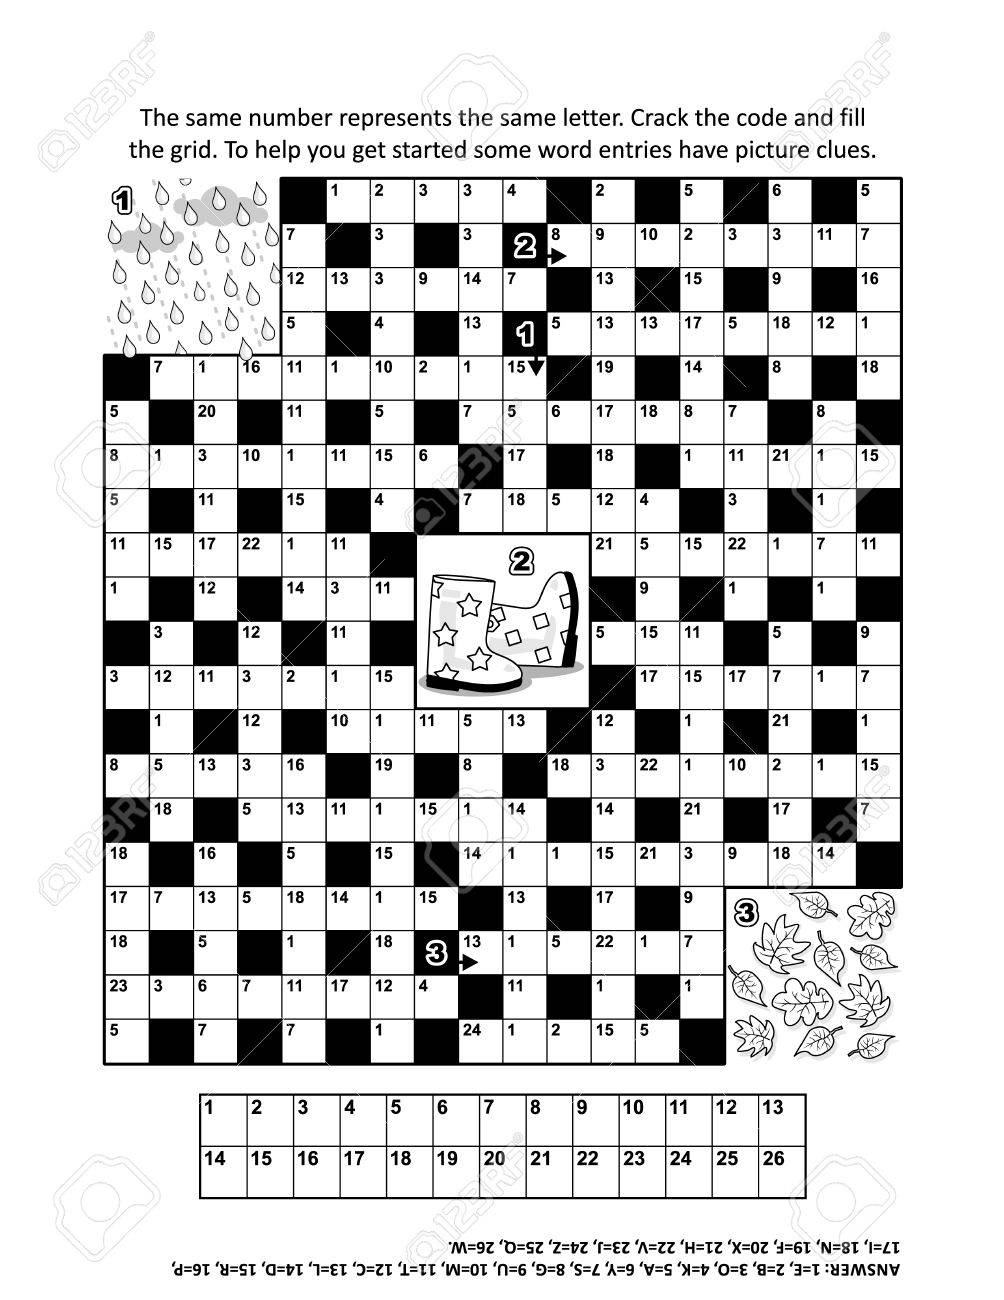 Codebreaker Or Codeword Code Cracker Crossword Puzzle Word Game With 9